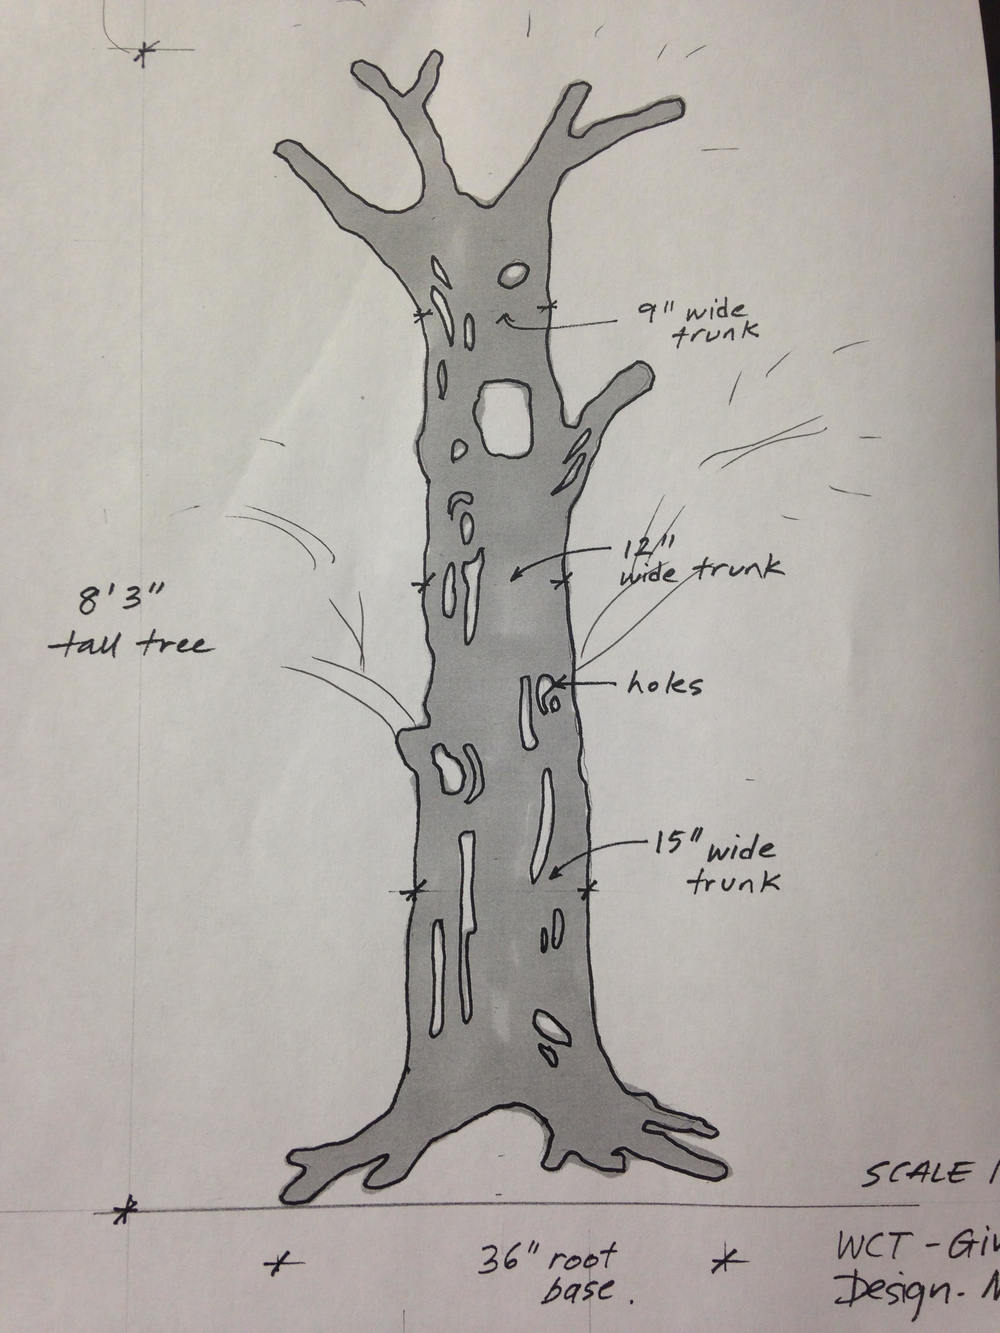 Schematic of our Giving Tree Trunk by artist and WCT collaborator Melissa Koch.